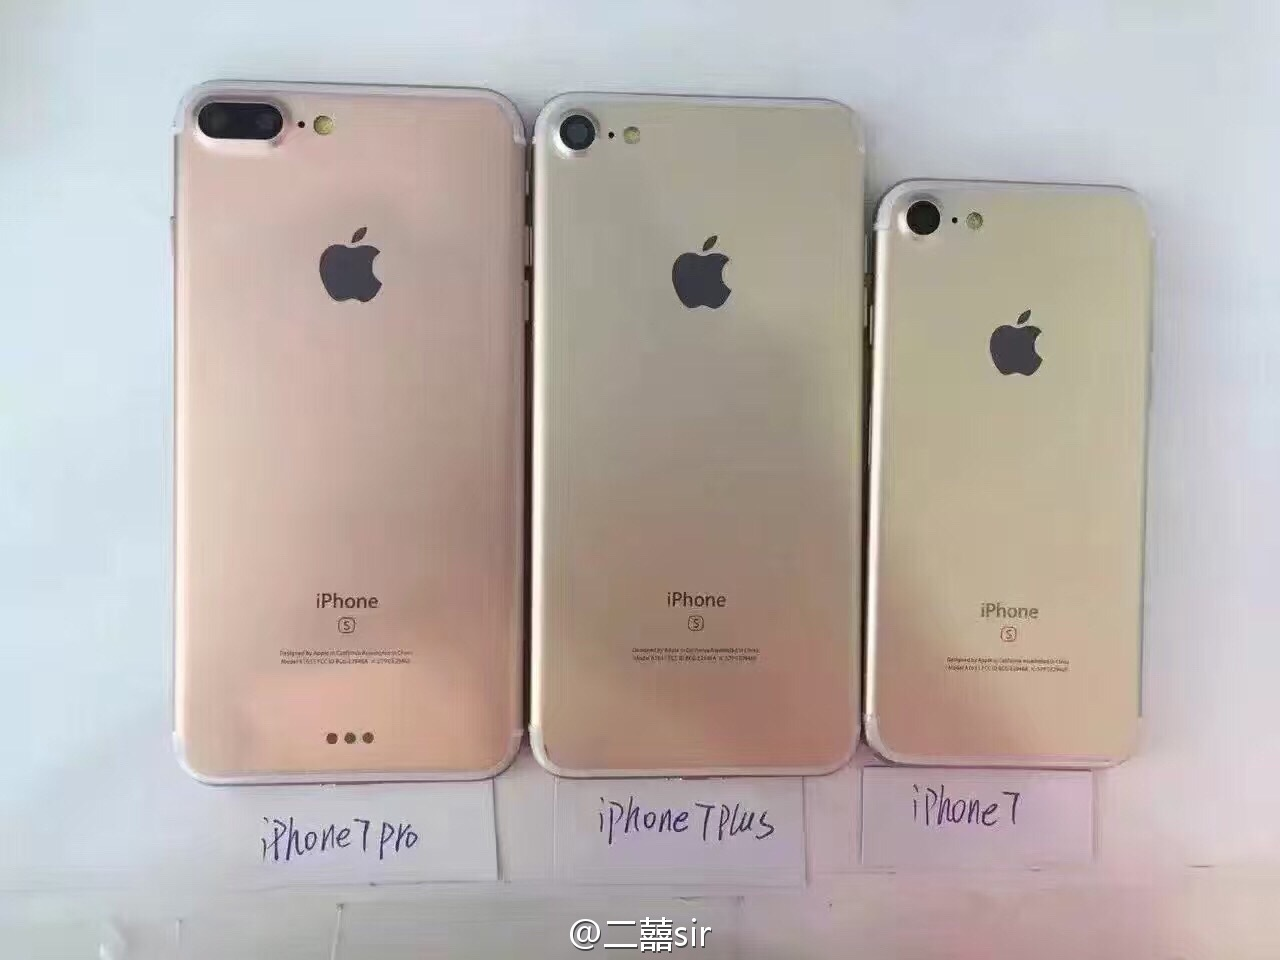 Maquetas del iPhone 7, Plus y Pro